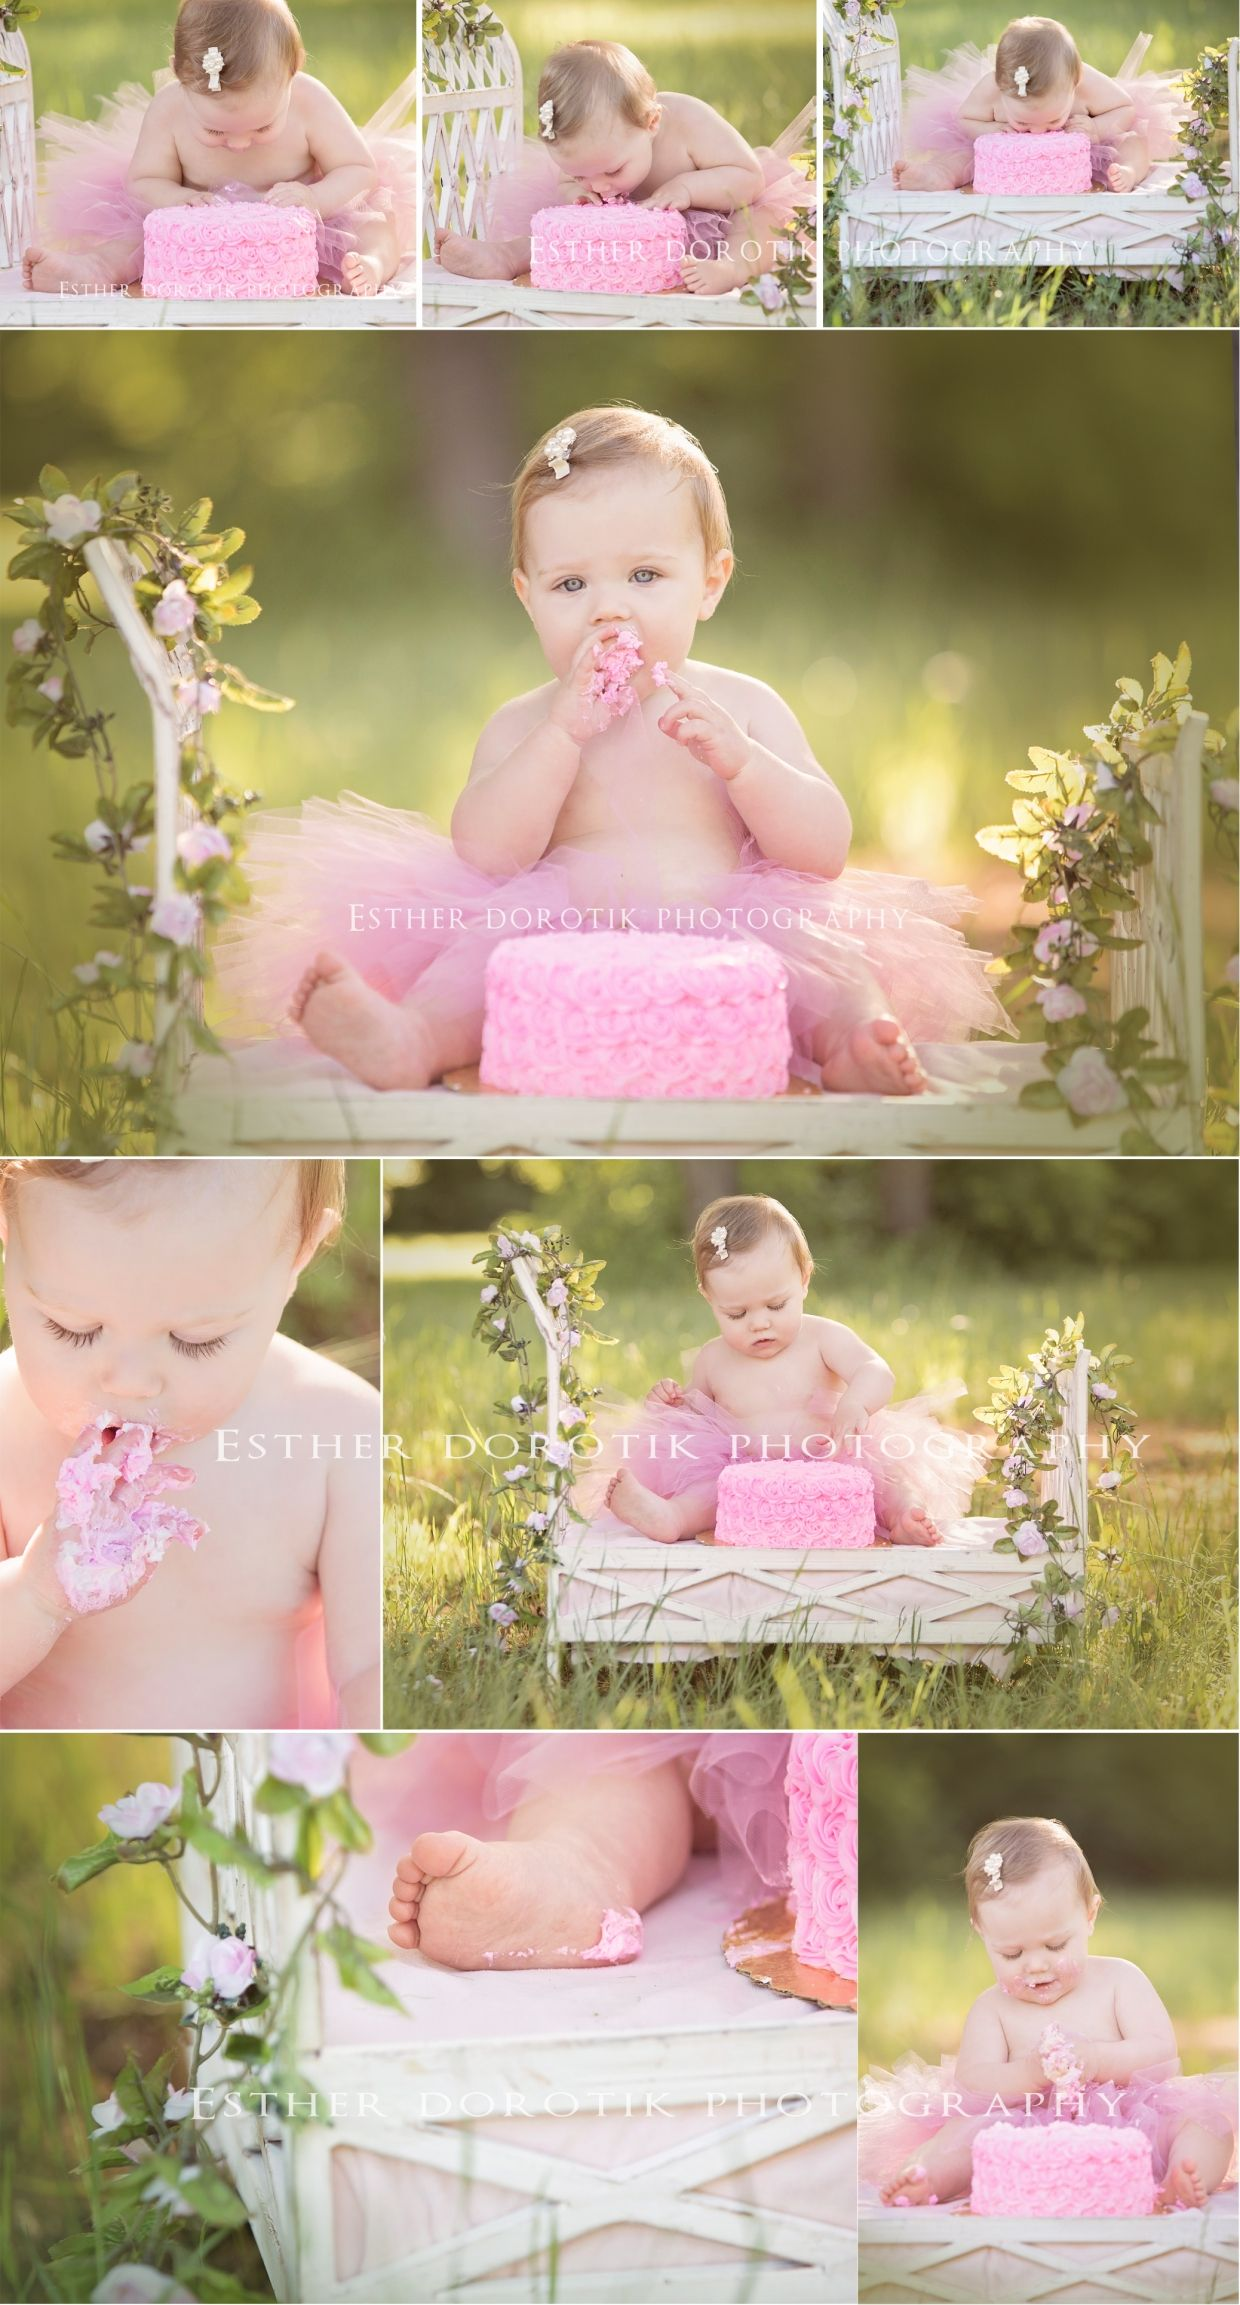 One Year Photoshoot Ideas Girl : photoshoot, ideas, Dallas, Photographer, Frisco, Keller, Infant, Colinas, Coppell, First, Birthday, Pictures,, Photos